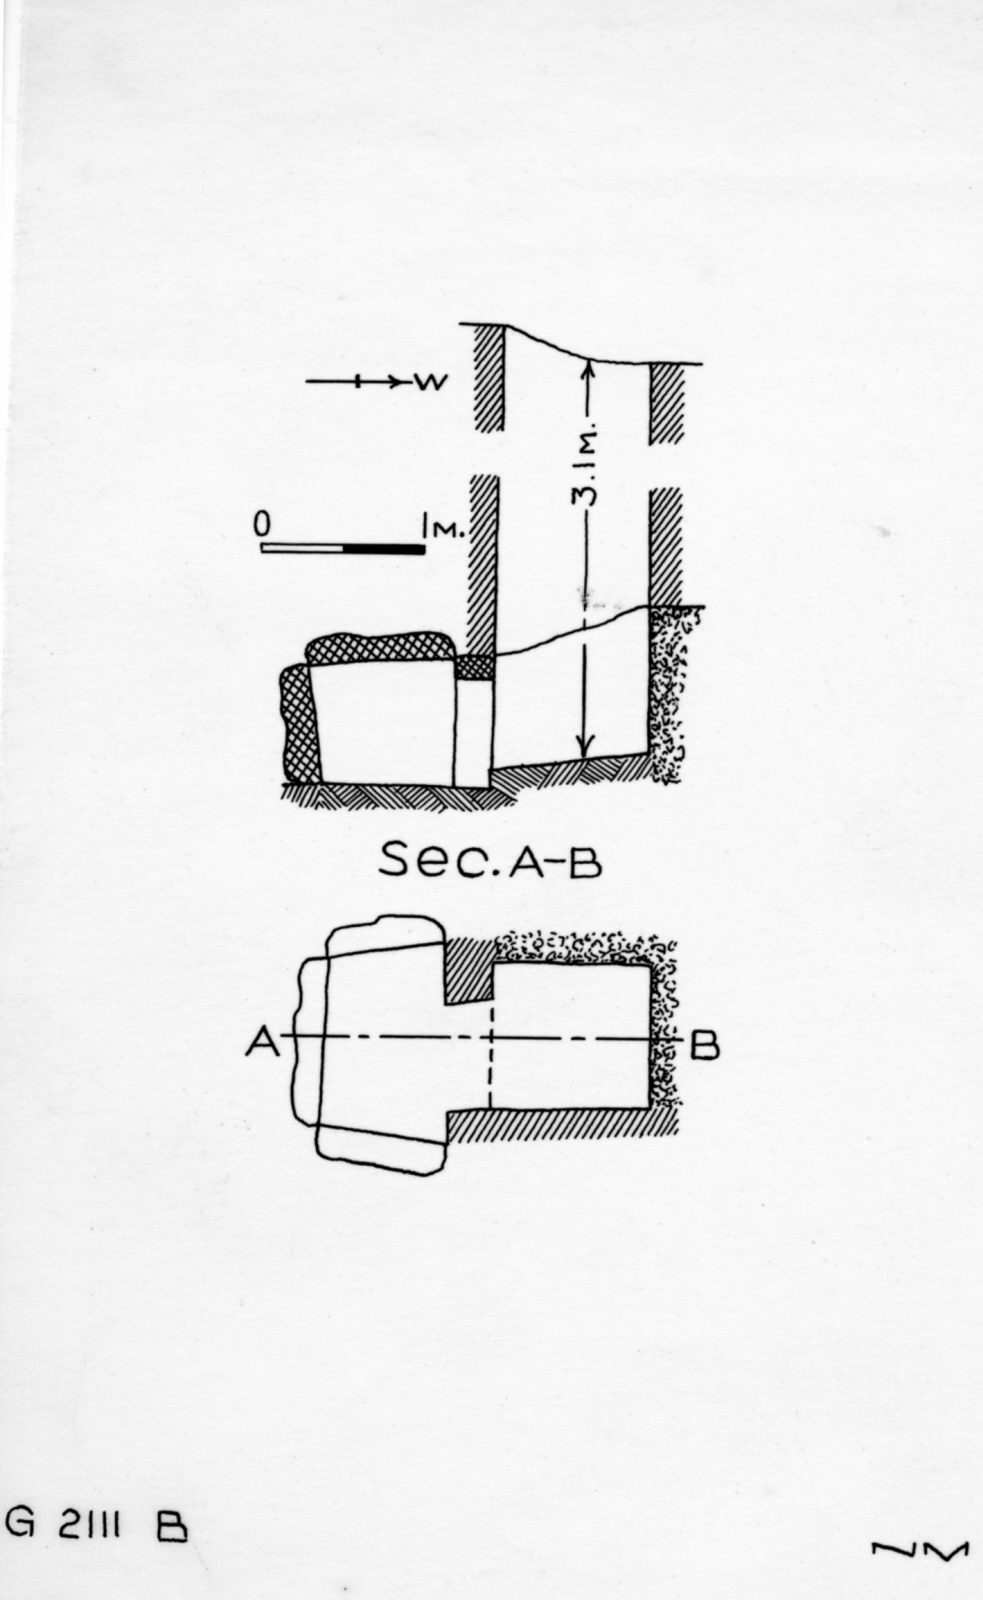 Maps and plans: G 2111, Shaft B